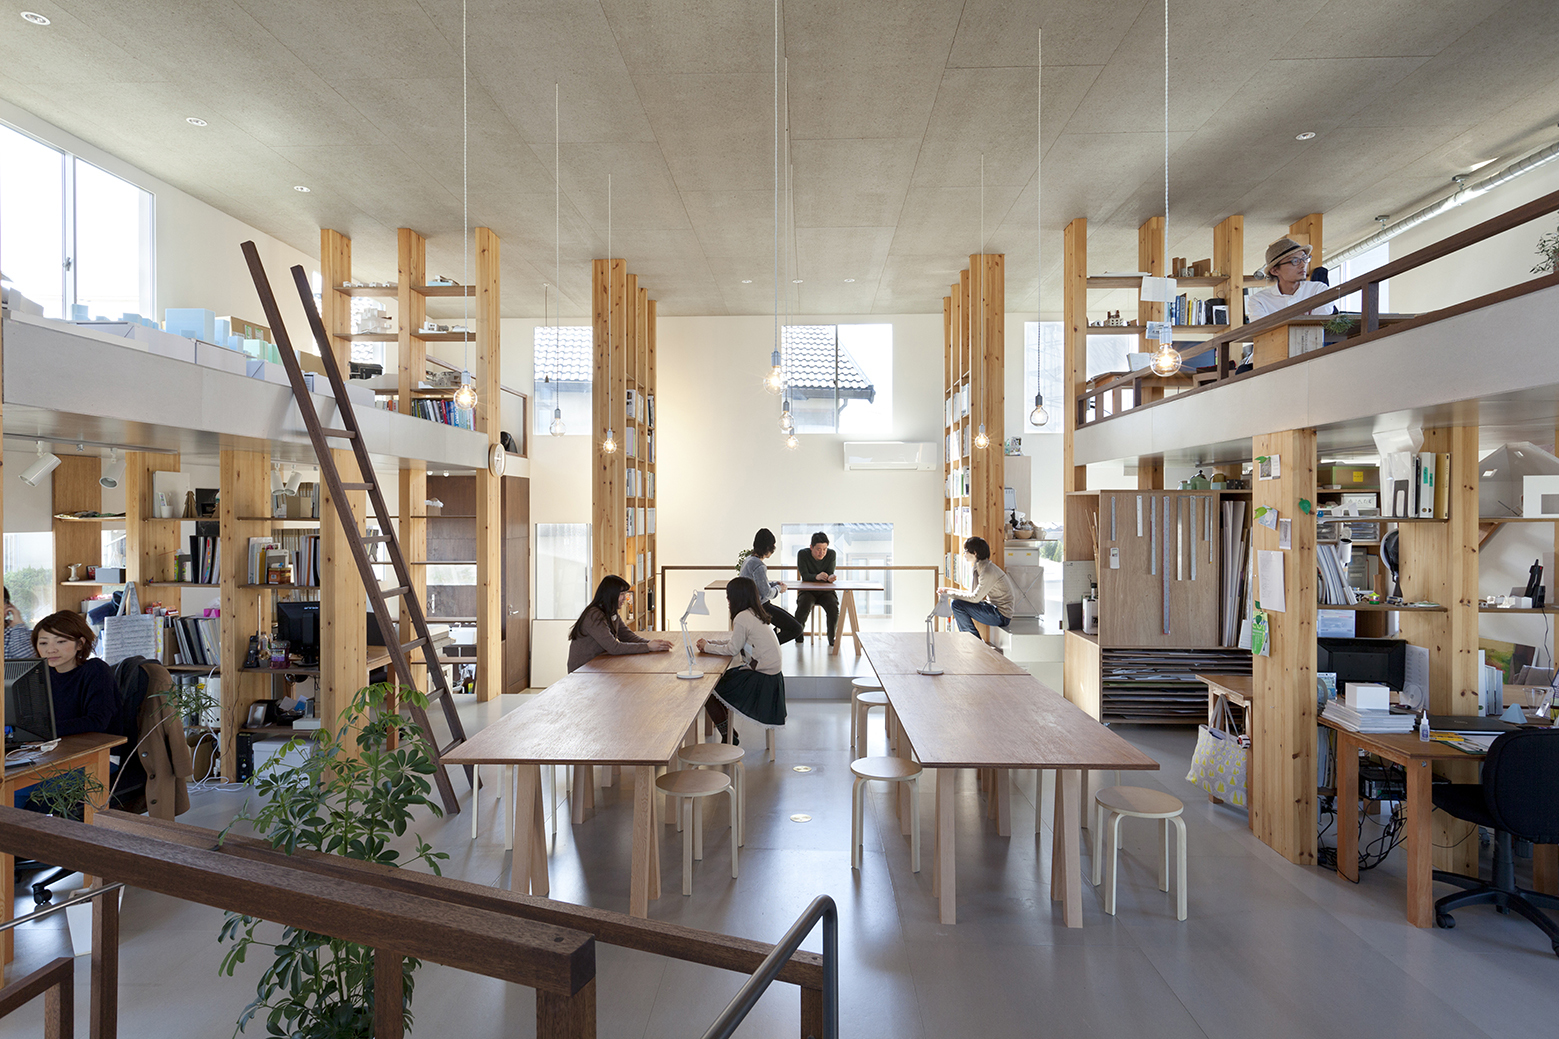 Pillar grove mamiya shinichi design studio archdaily for Asian office decor